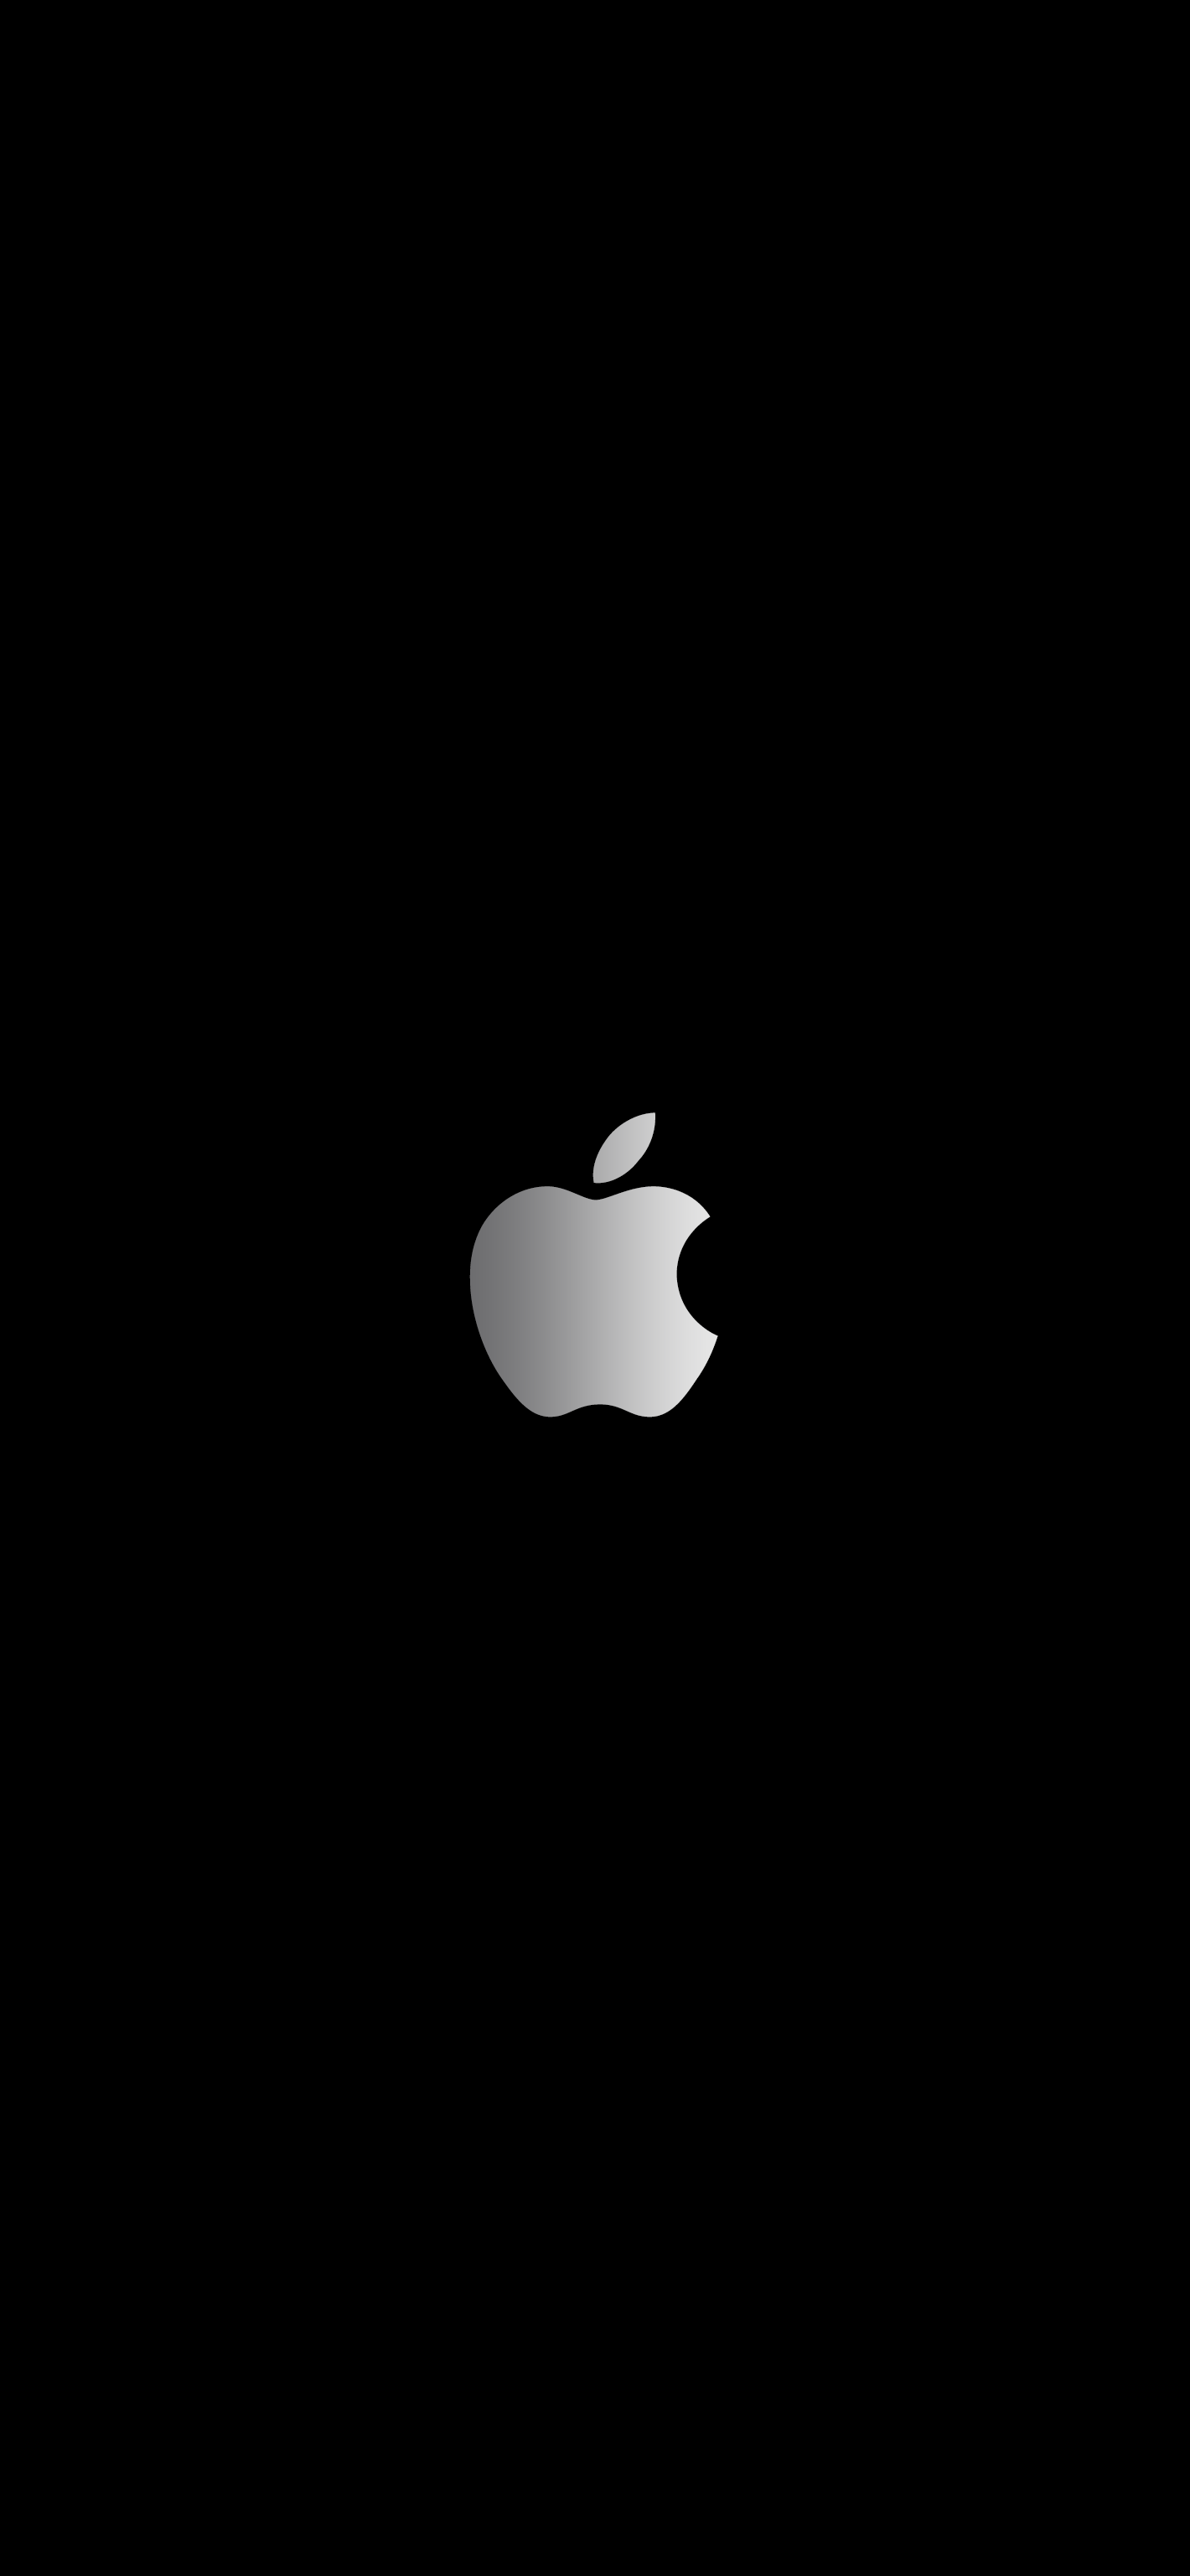 Apple Logo Animated Ios 11 Live Wallpaper Wallpapers Central